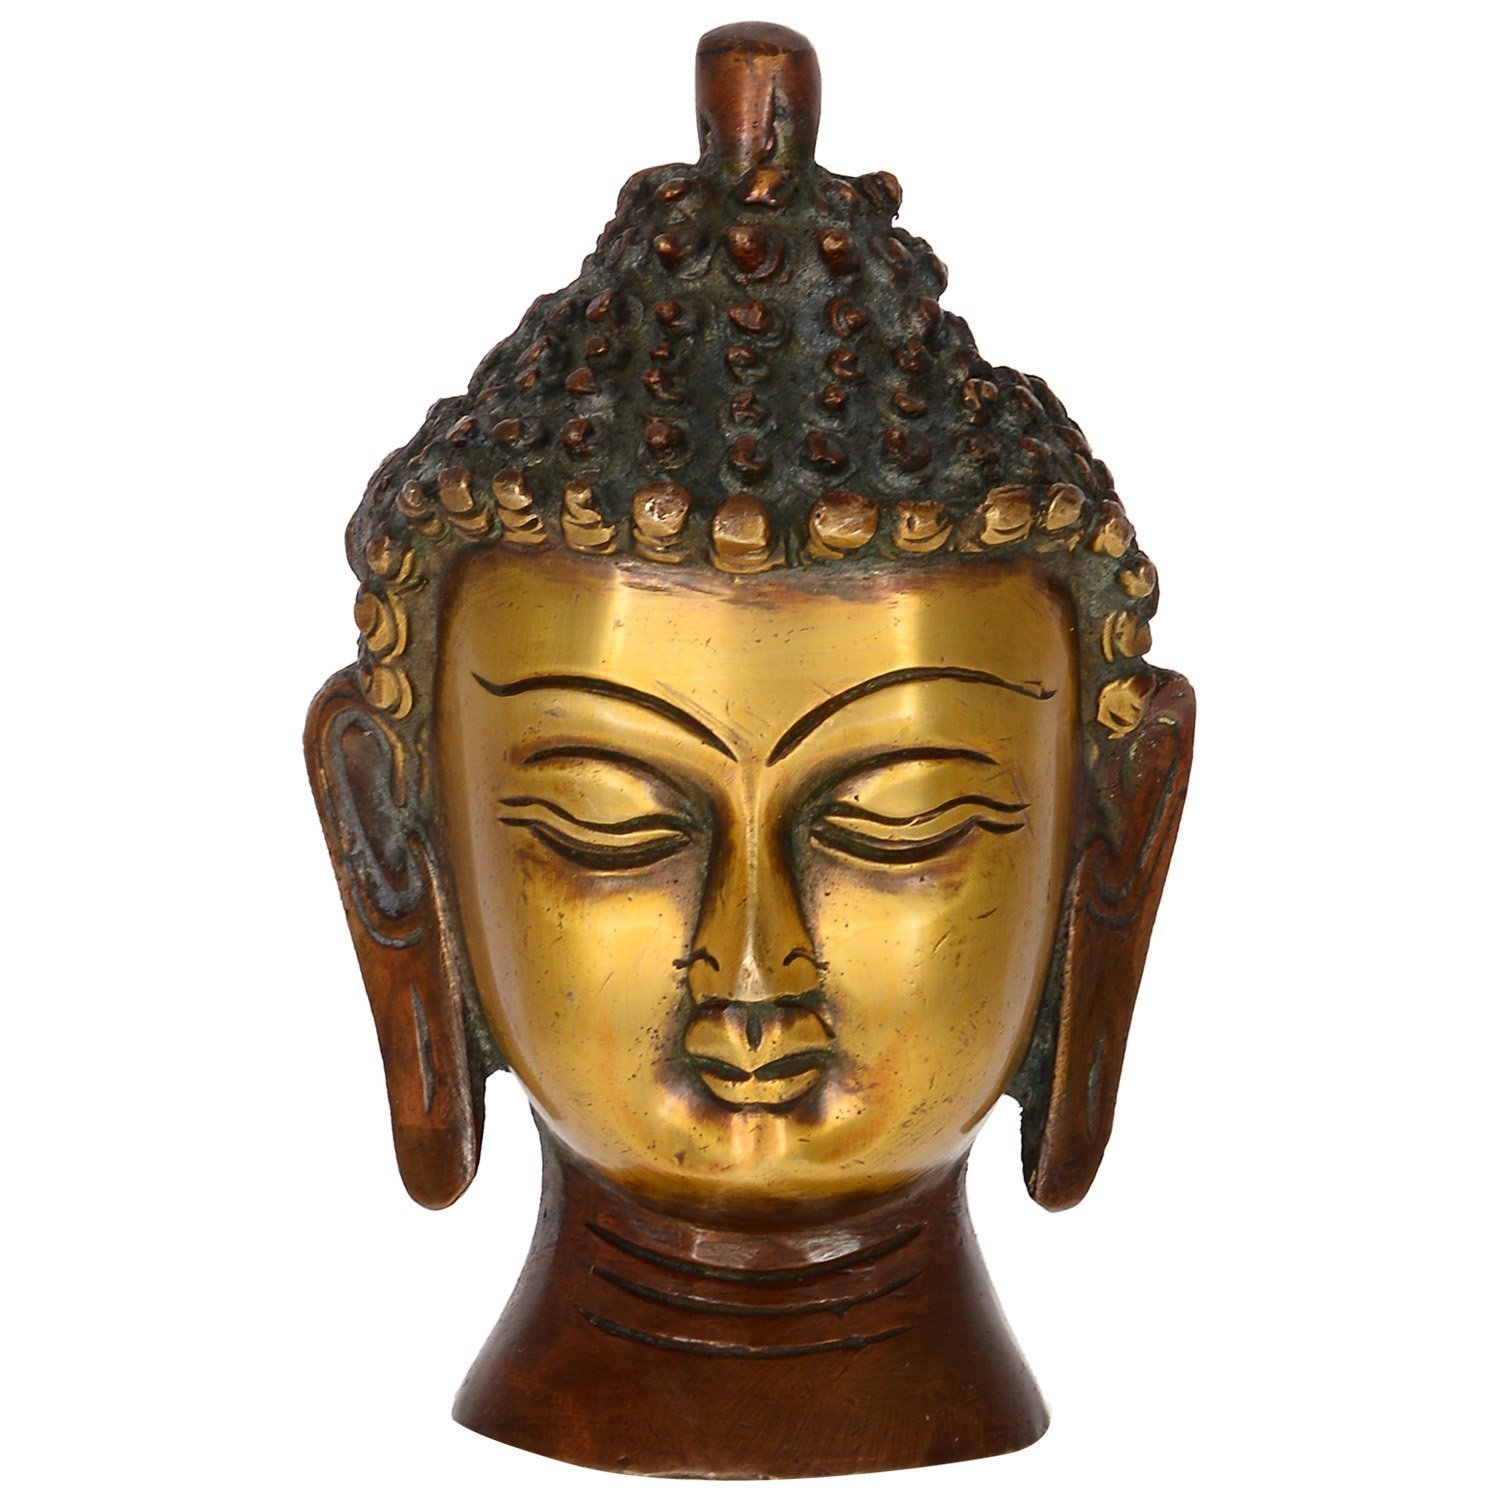 statue s statues dsc vincraft indian decor handicrafts home buddha in unique buy